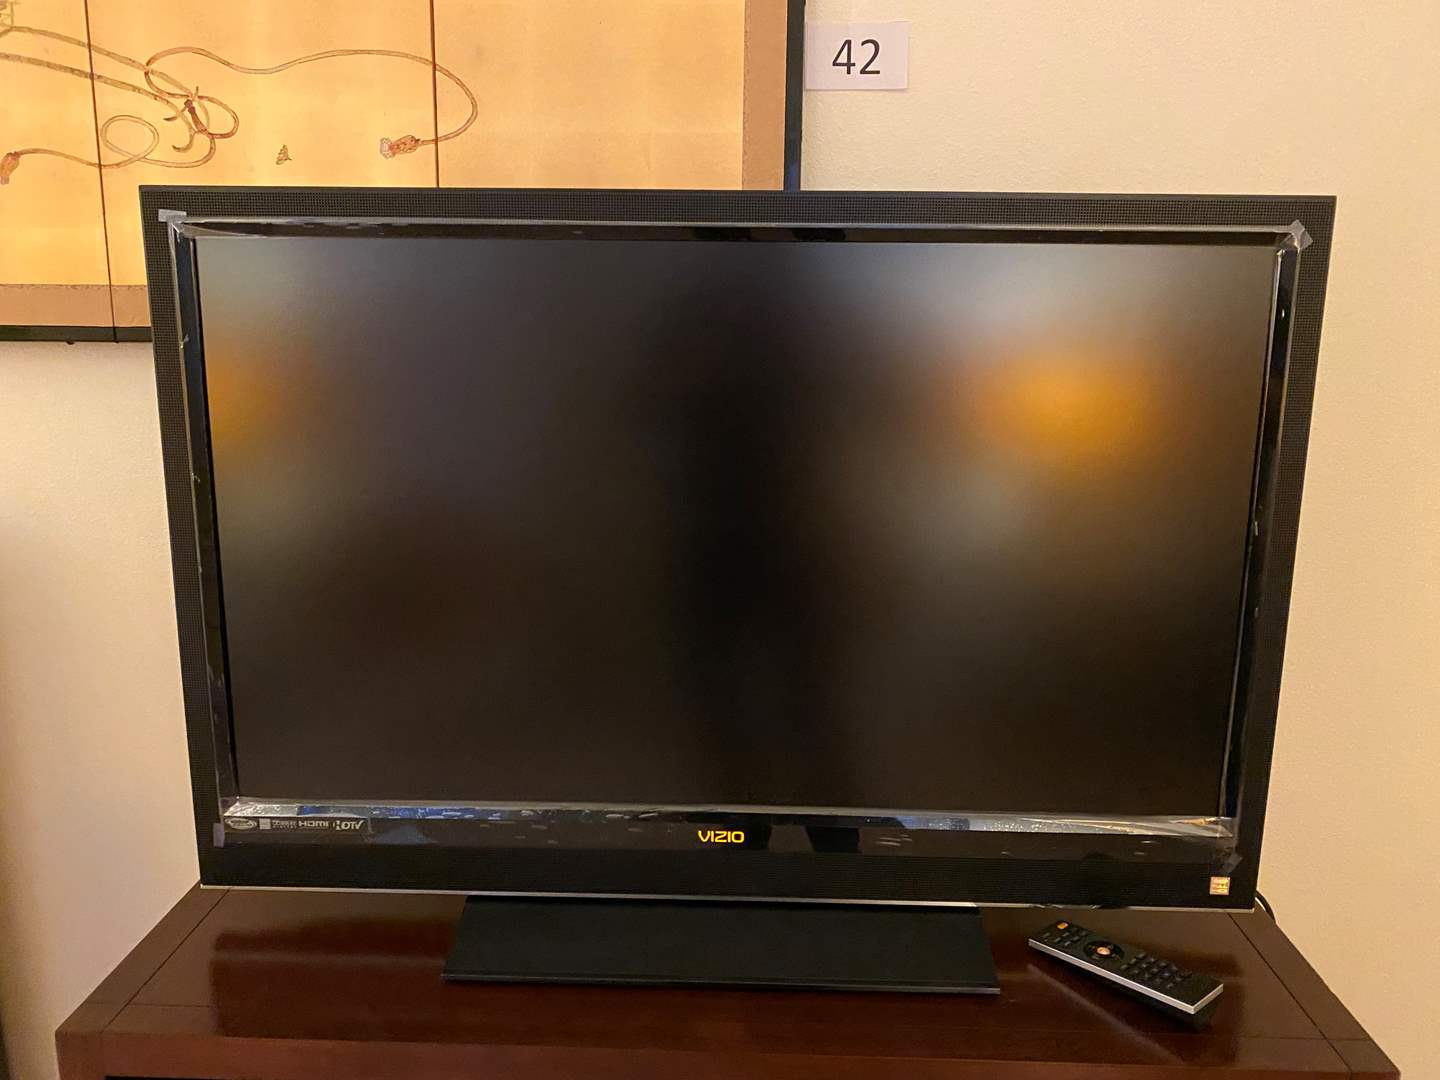 "Lot # 43 - Vizio 42"" HDTV - Works (main image)"